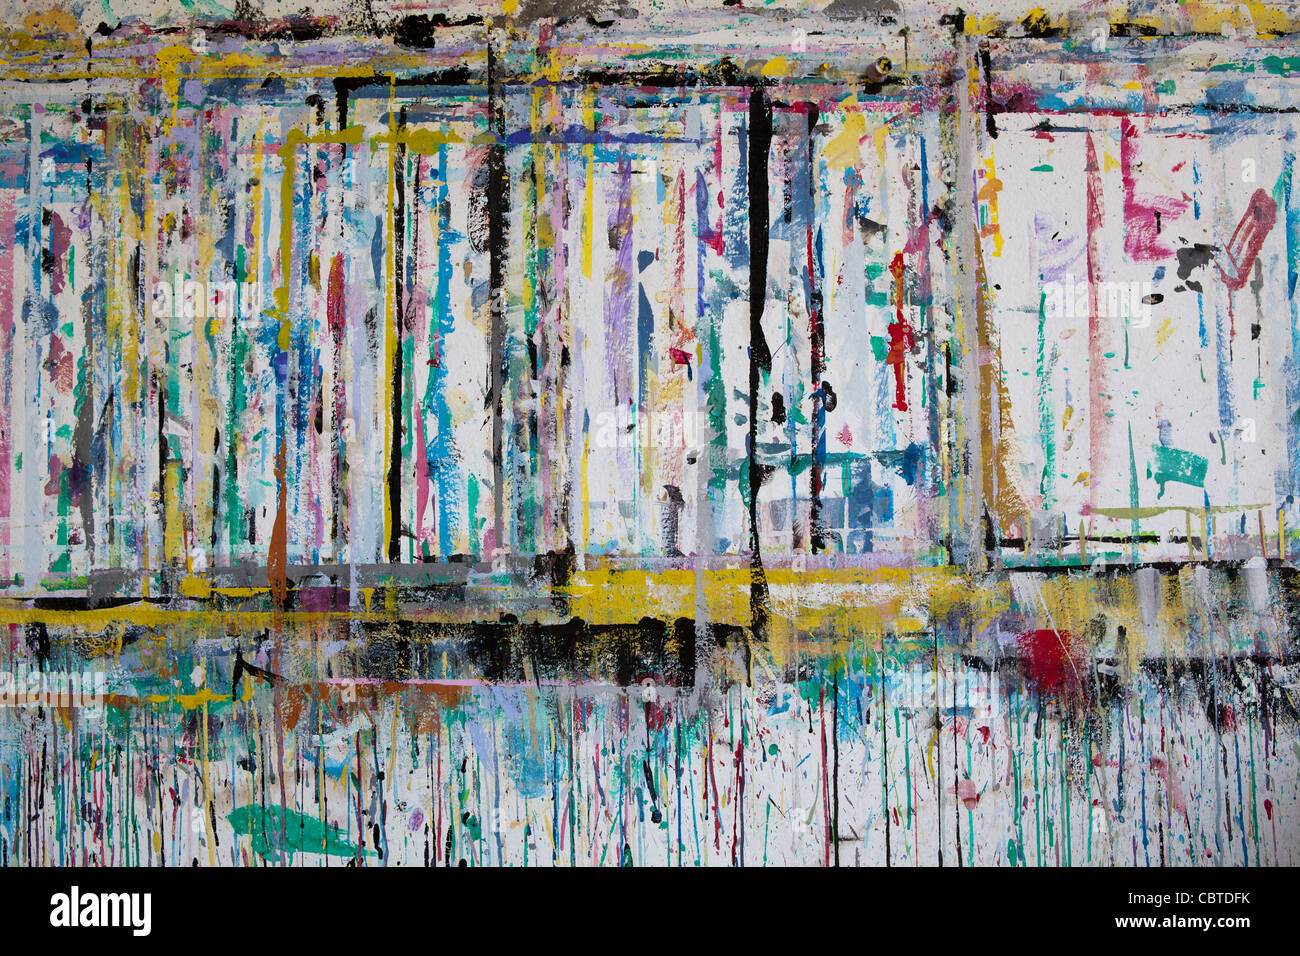 A wall of paper becomes an abstract painting after children remove their artwork from it. - Stock Image